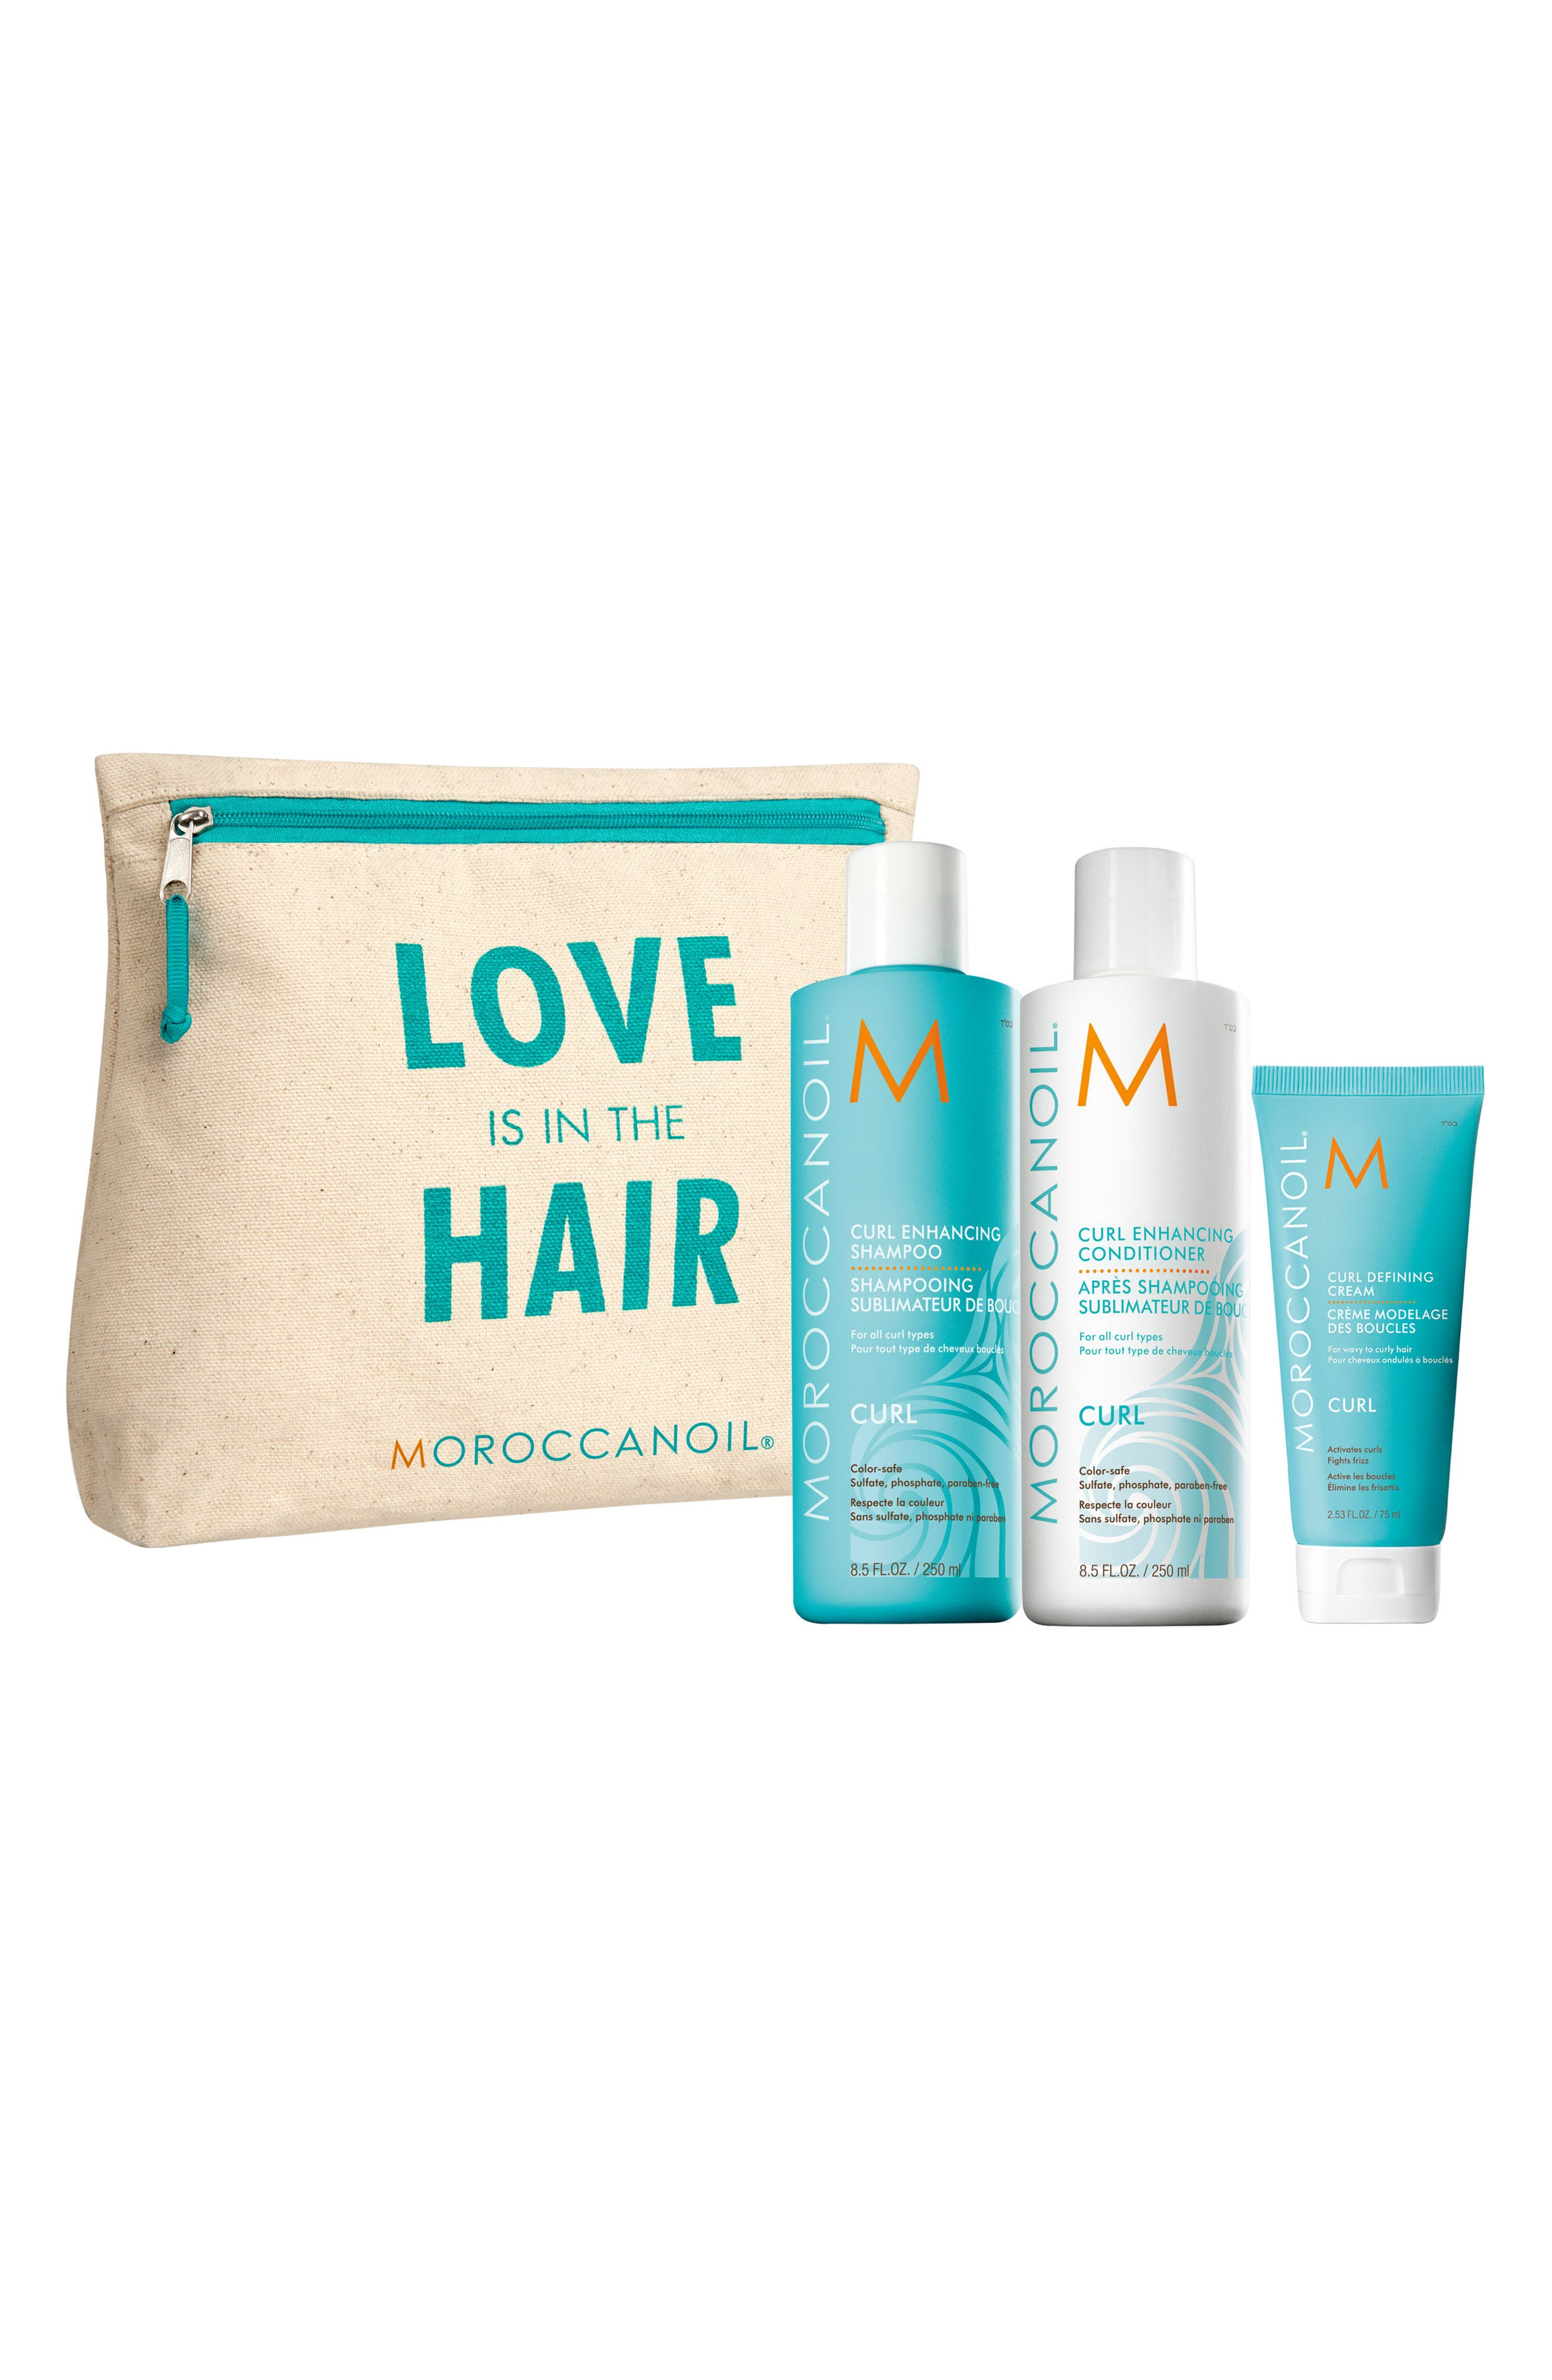 MOROCCANOIL® Love is in the Hair Curl Set ($70 Value)